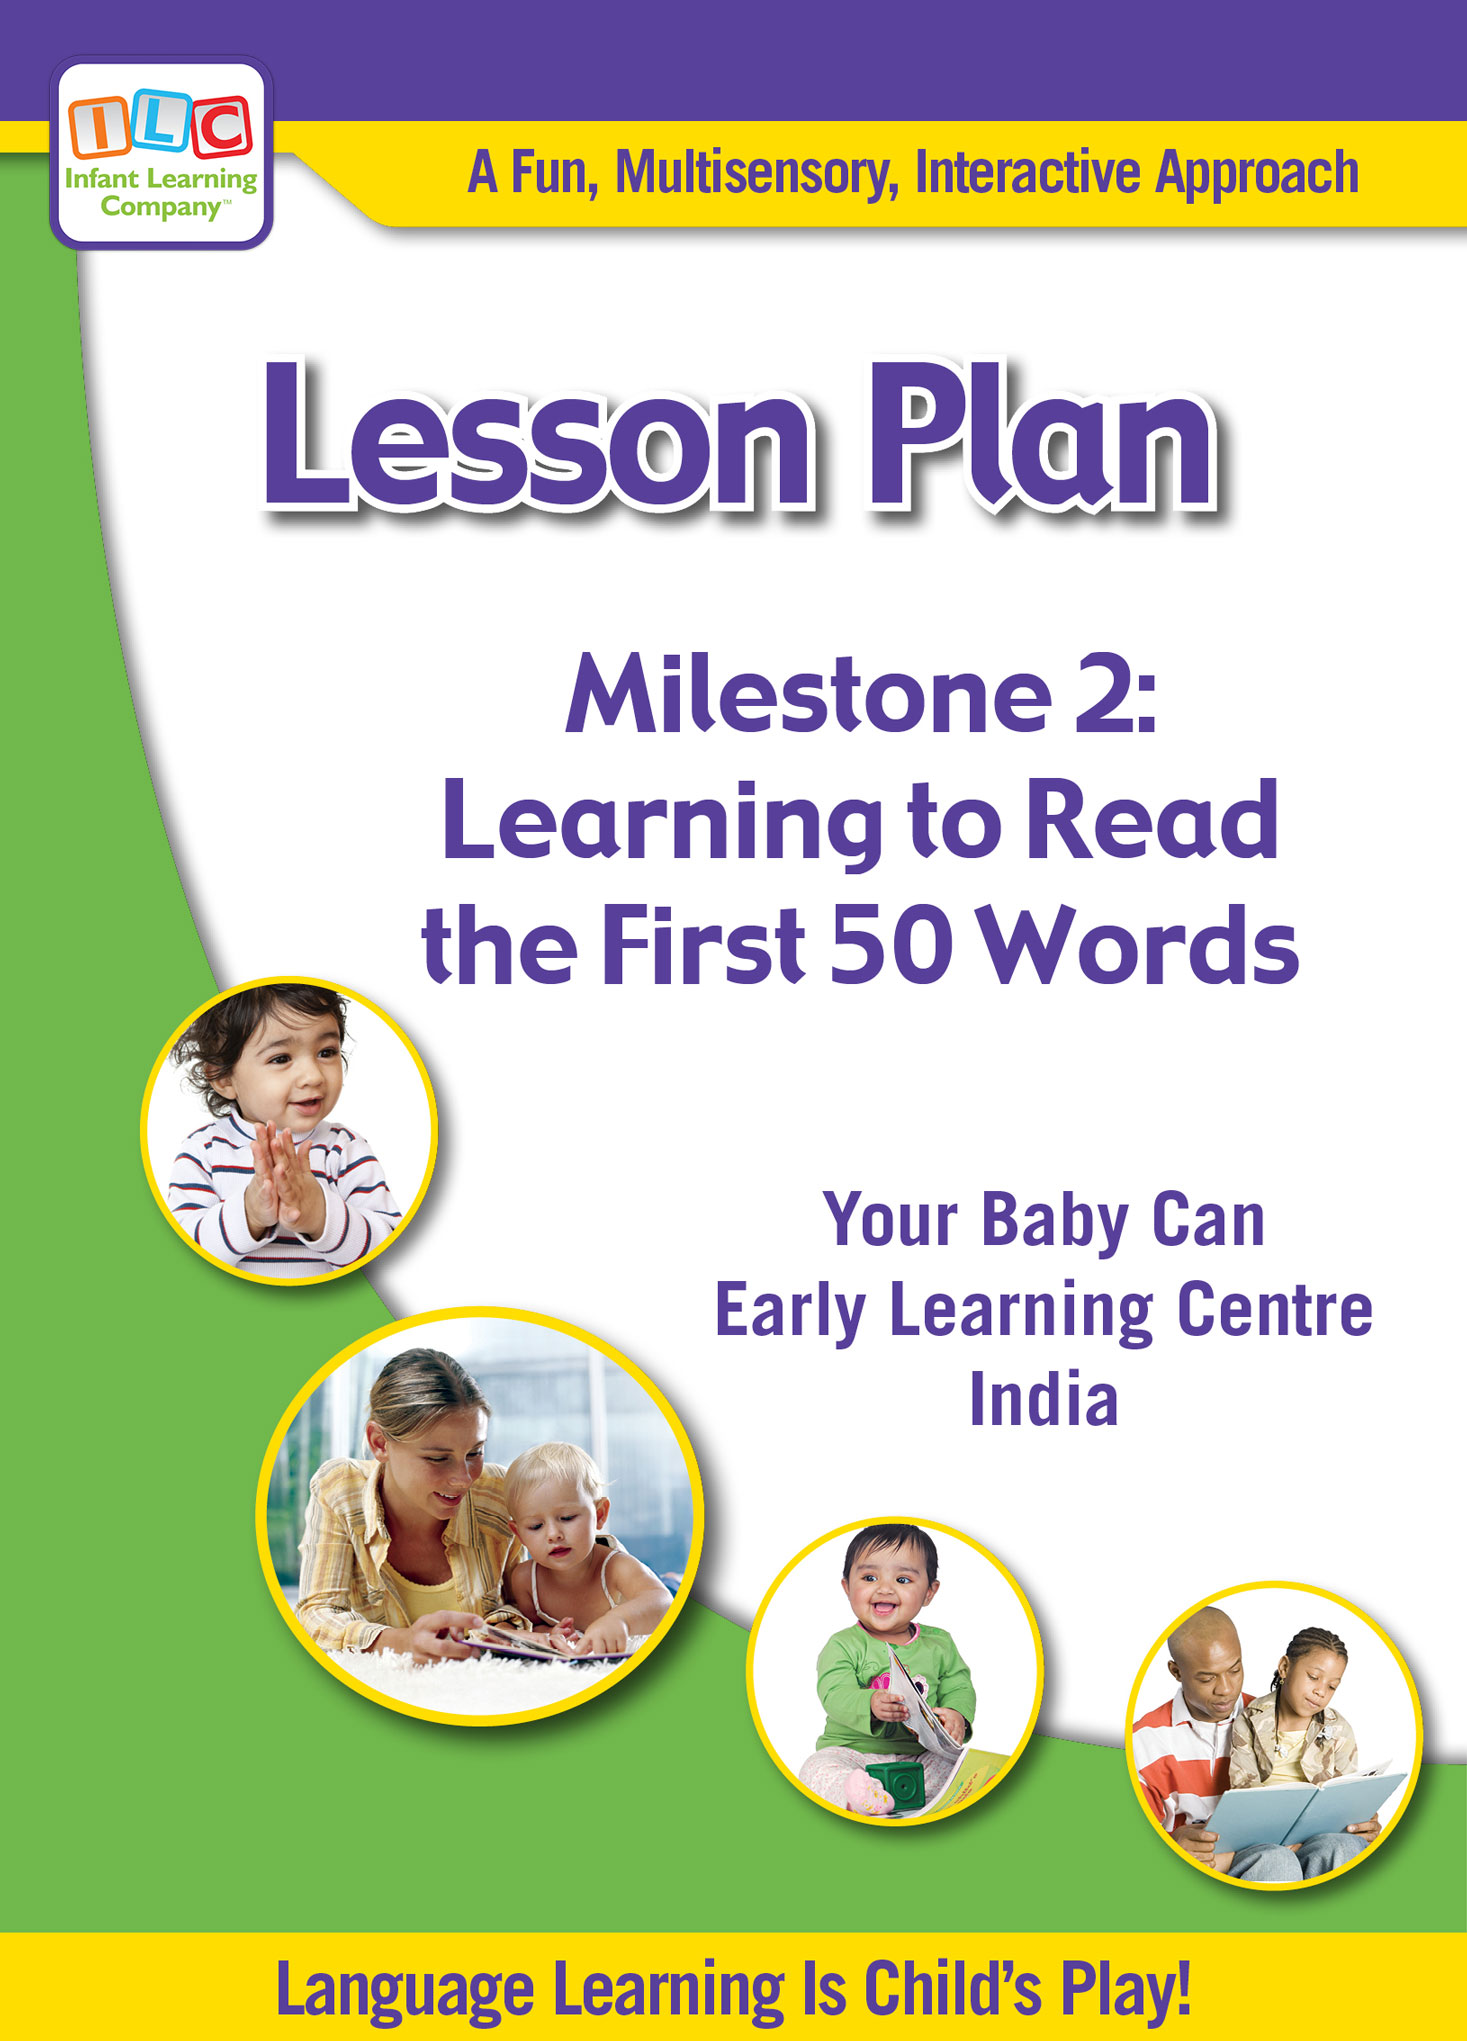 Sample Lesson Plan for Milestone 2: Learning to Read the First 50 Words PDF